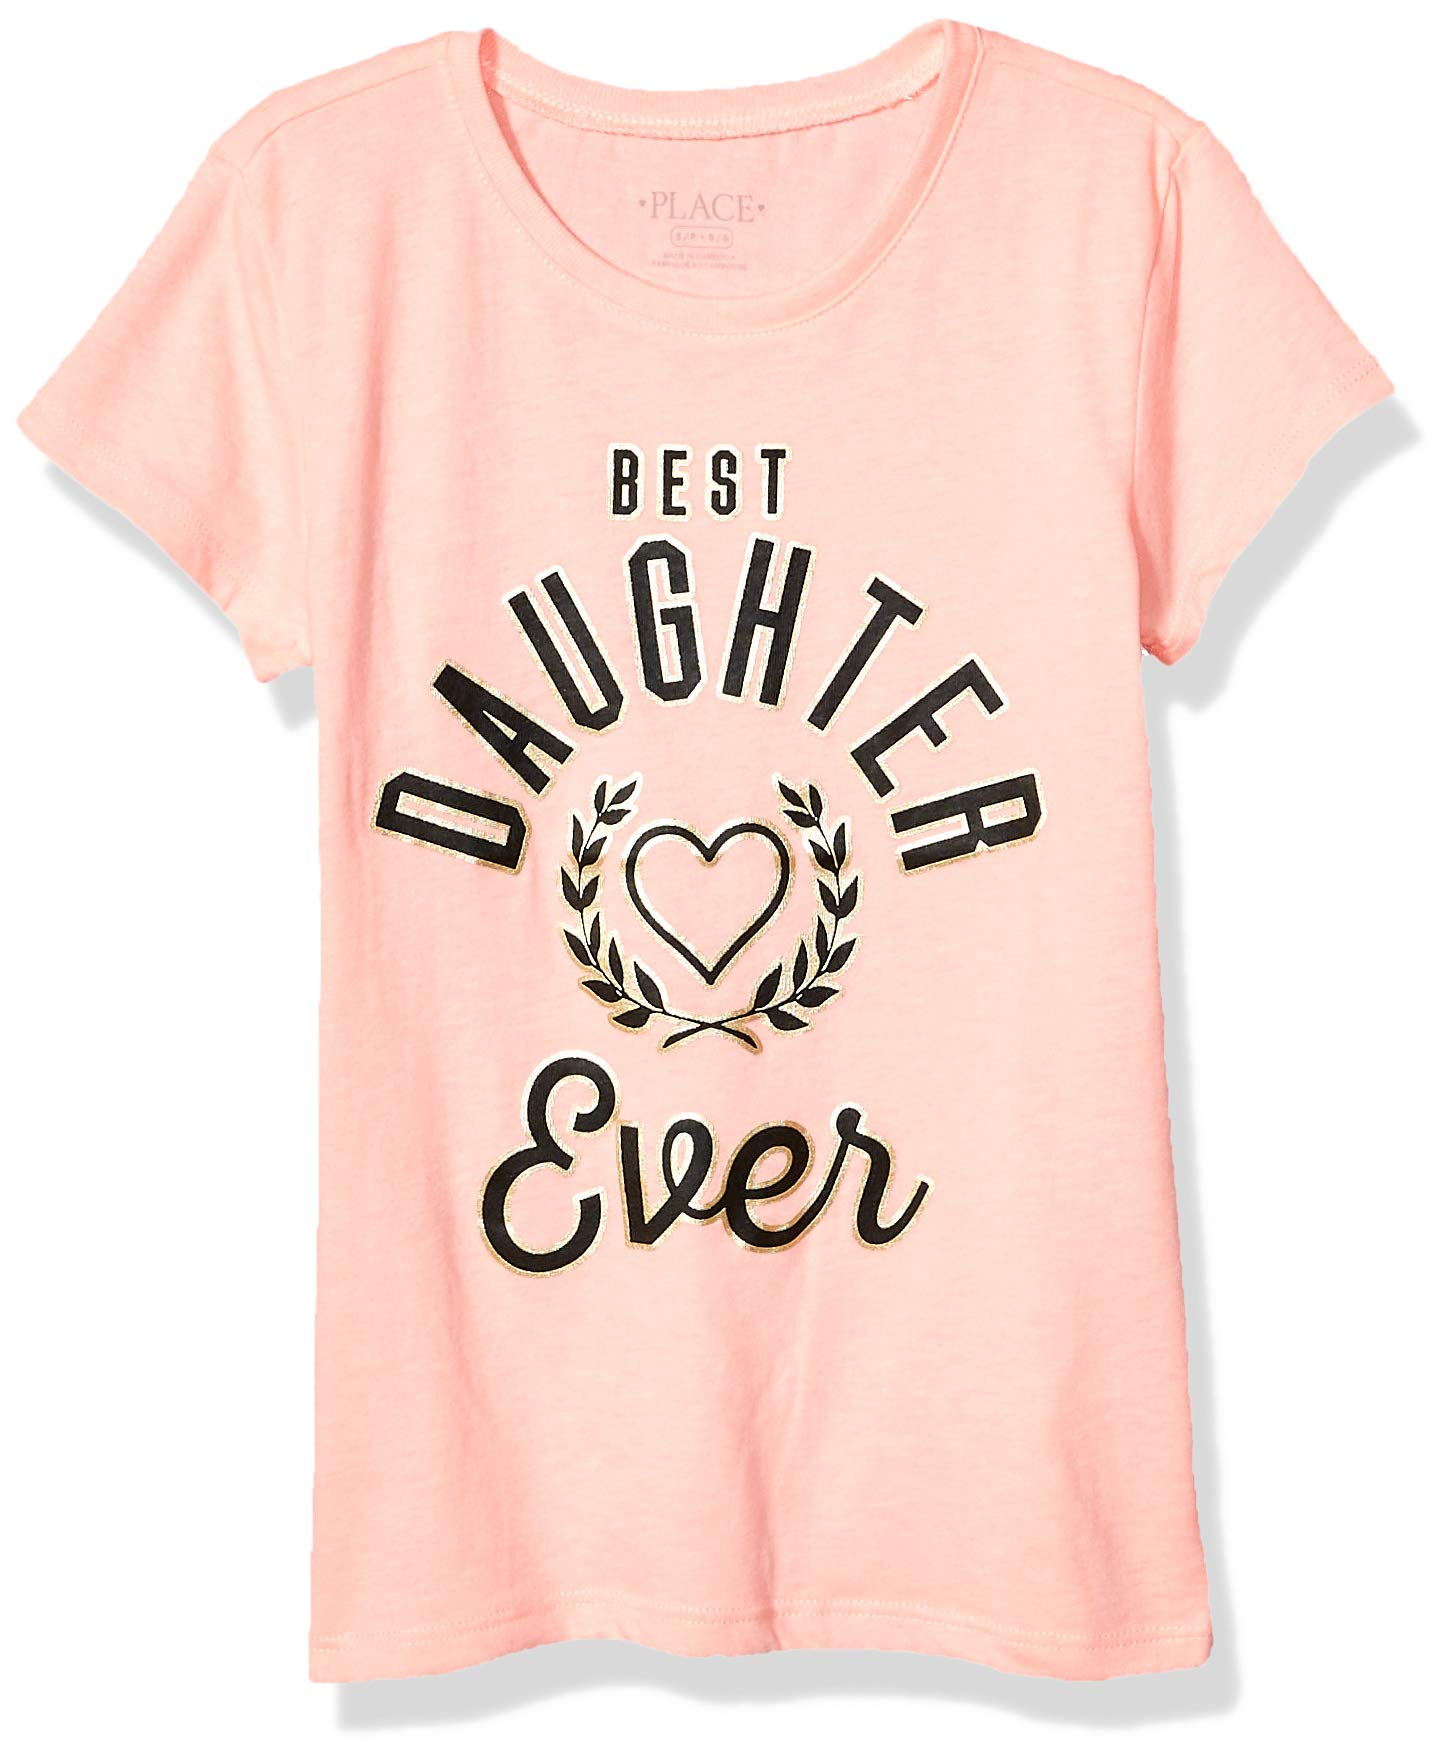 The Children's Place Girls' Big Short Sleeve Graphic Tees